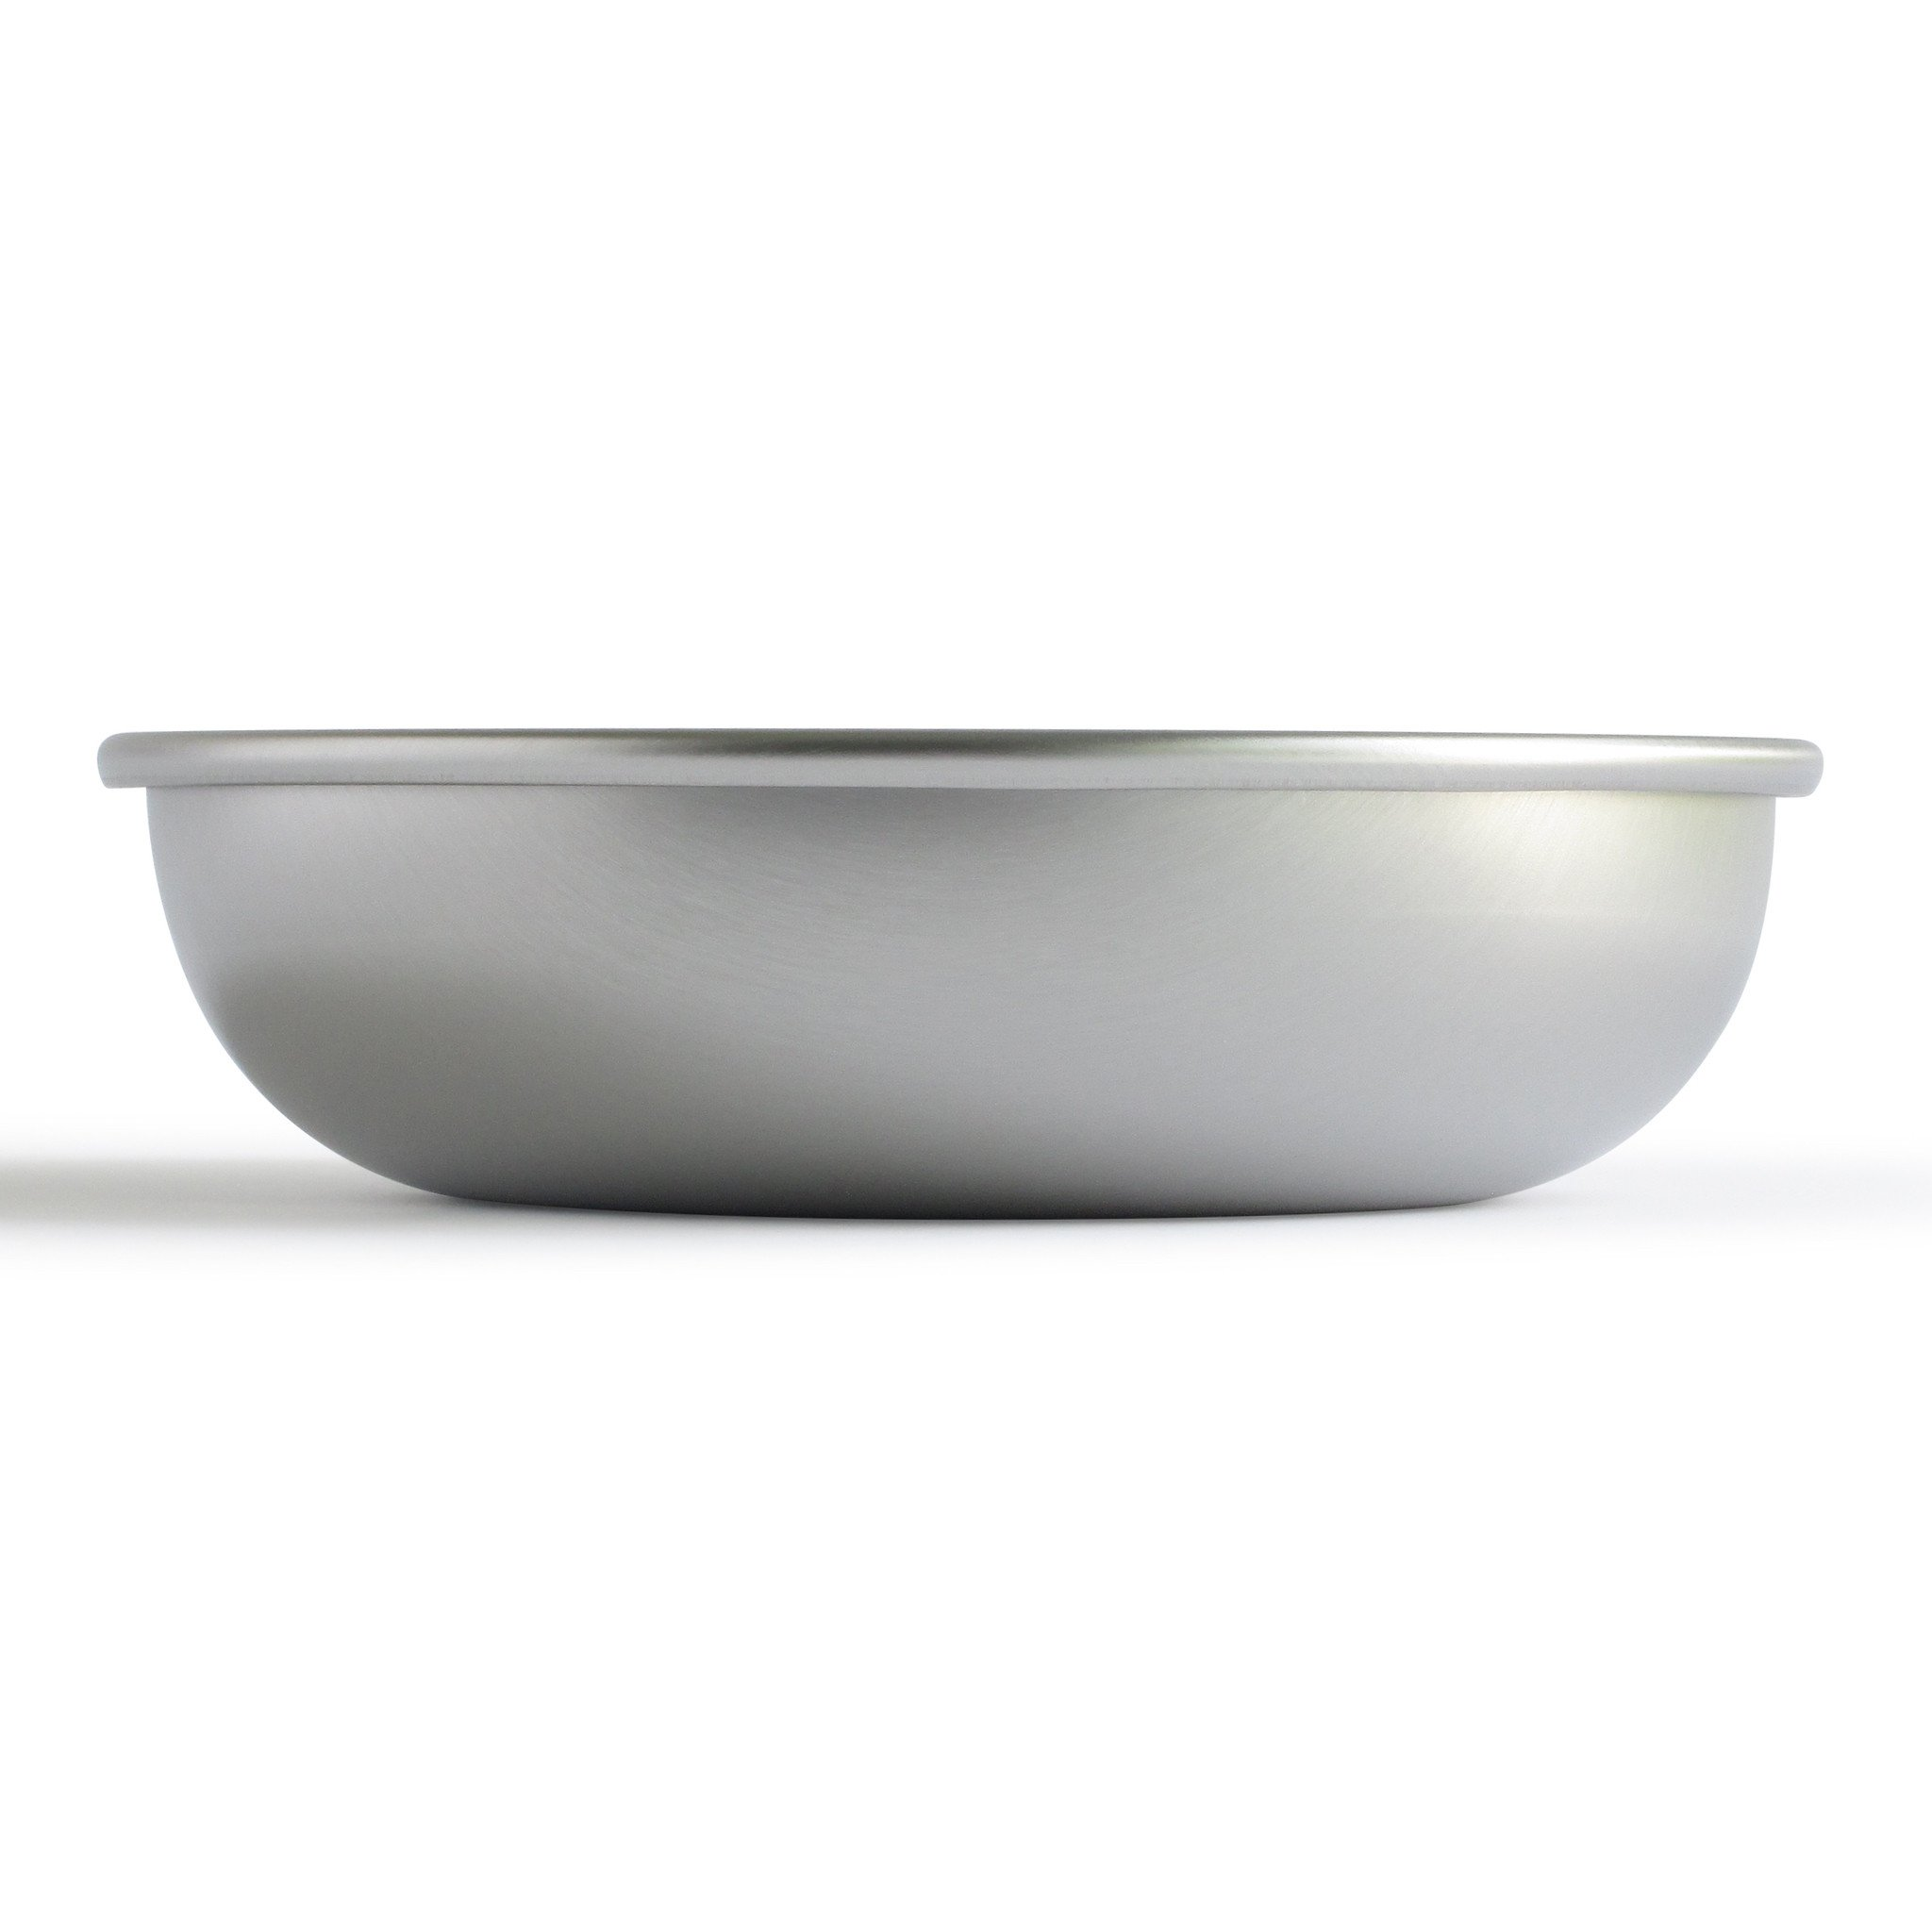 Stainless Steel Cat Bowls - Made in the USA - BASIS PET